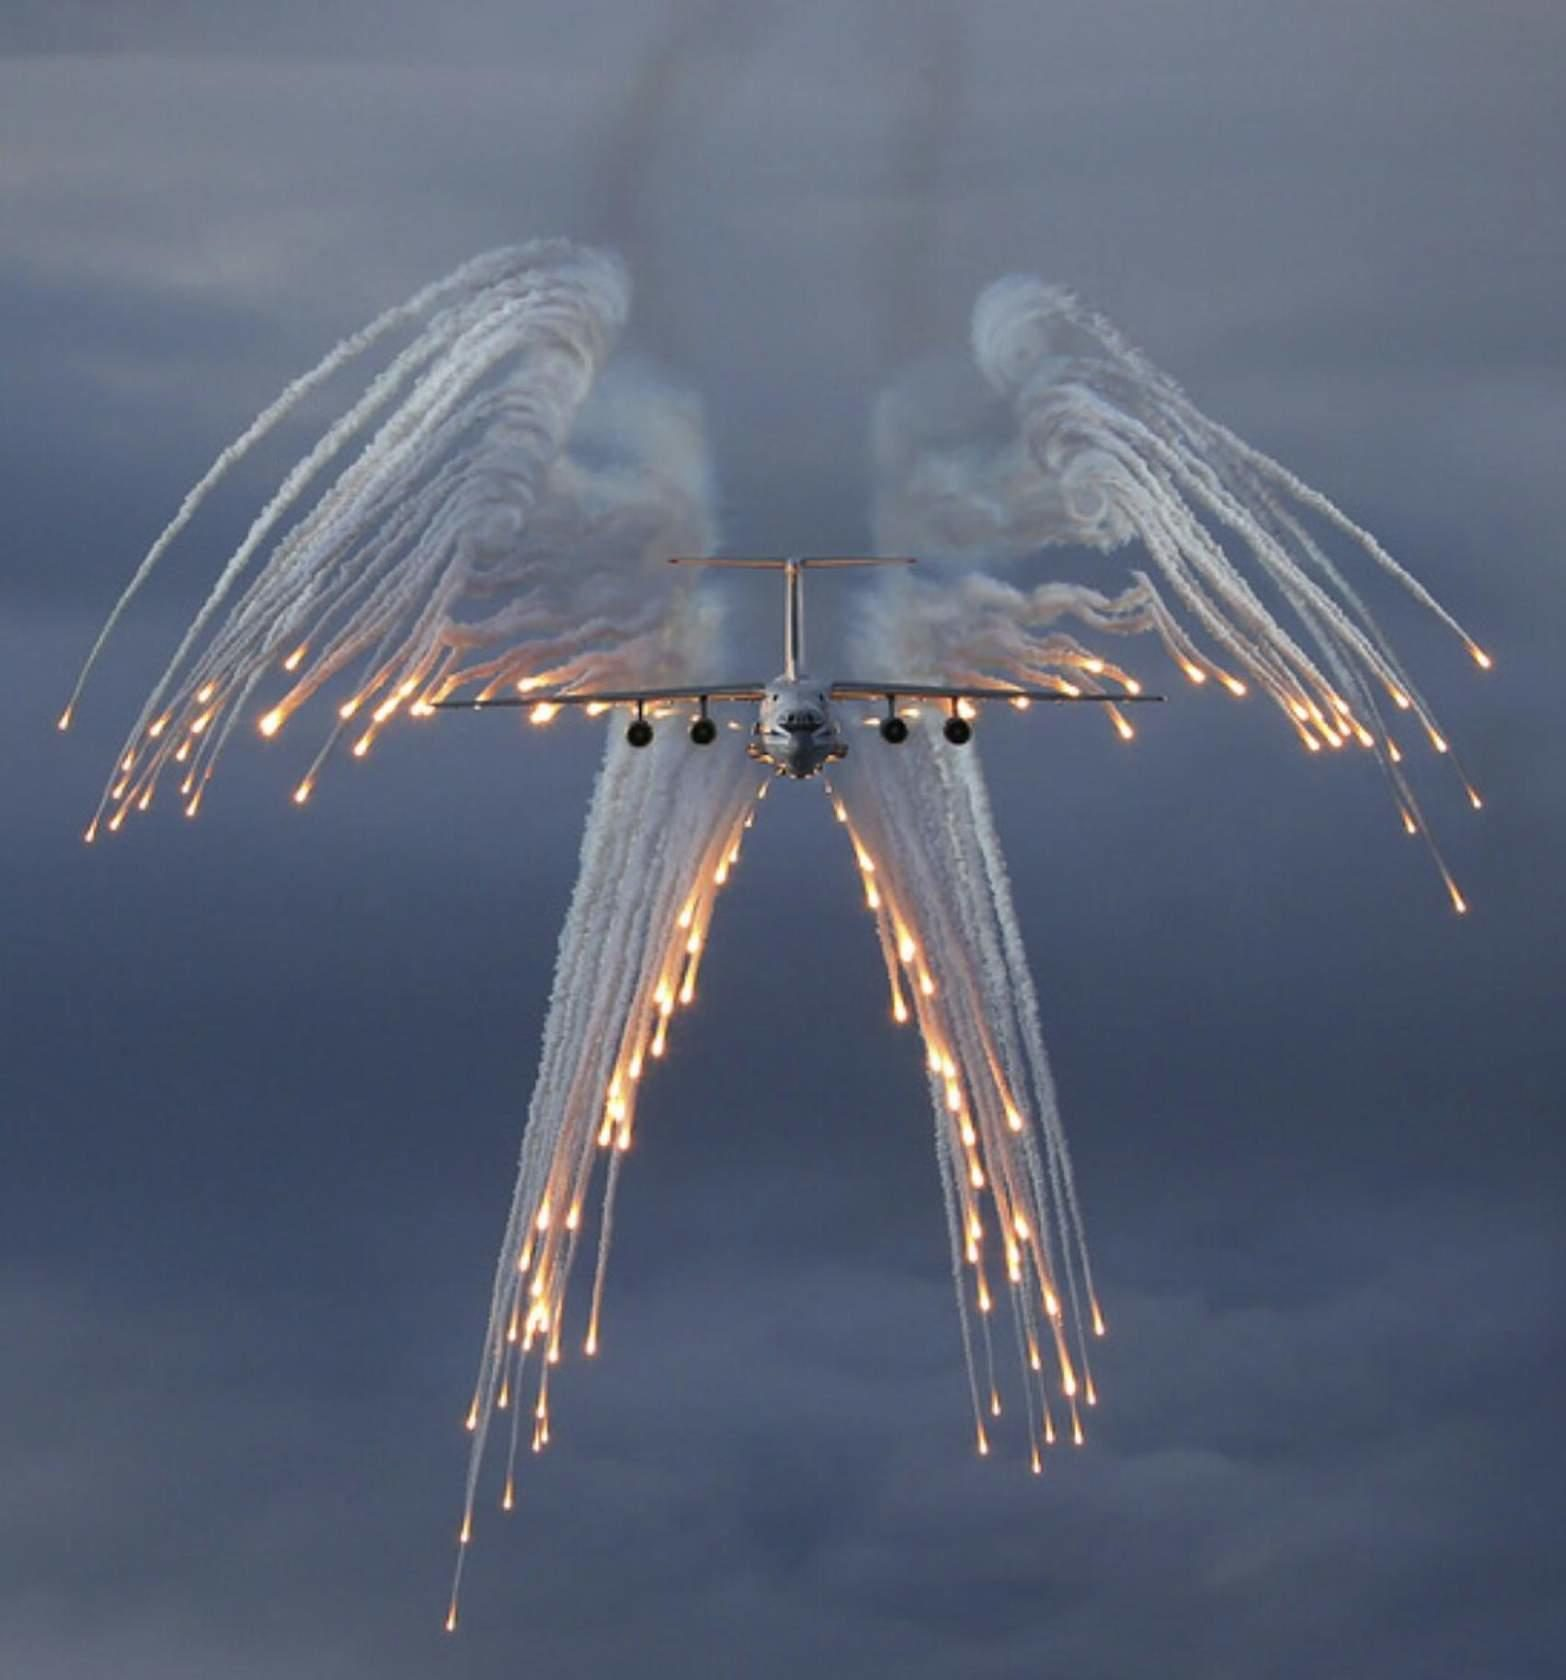 Fact Check Do Angel Flights Release Flare Salutes For Fallen